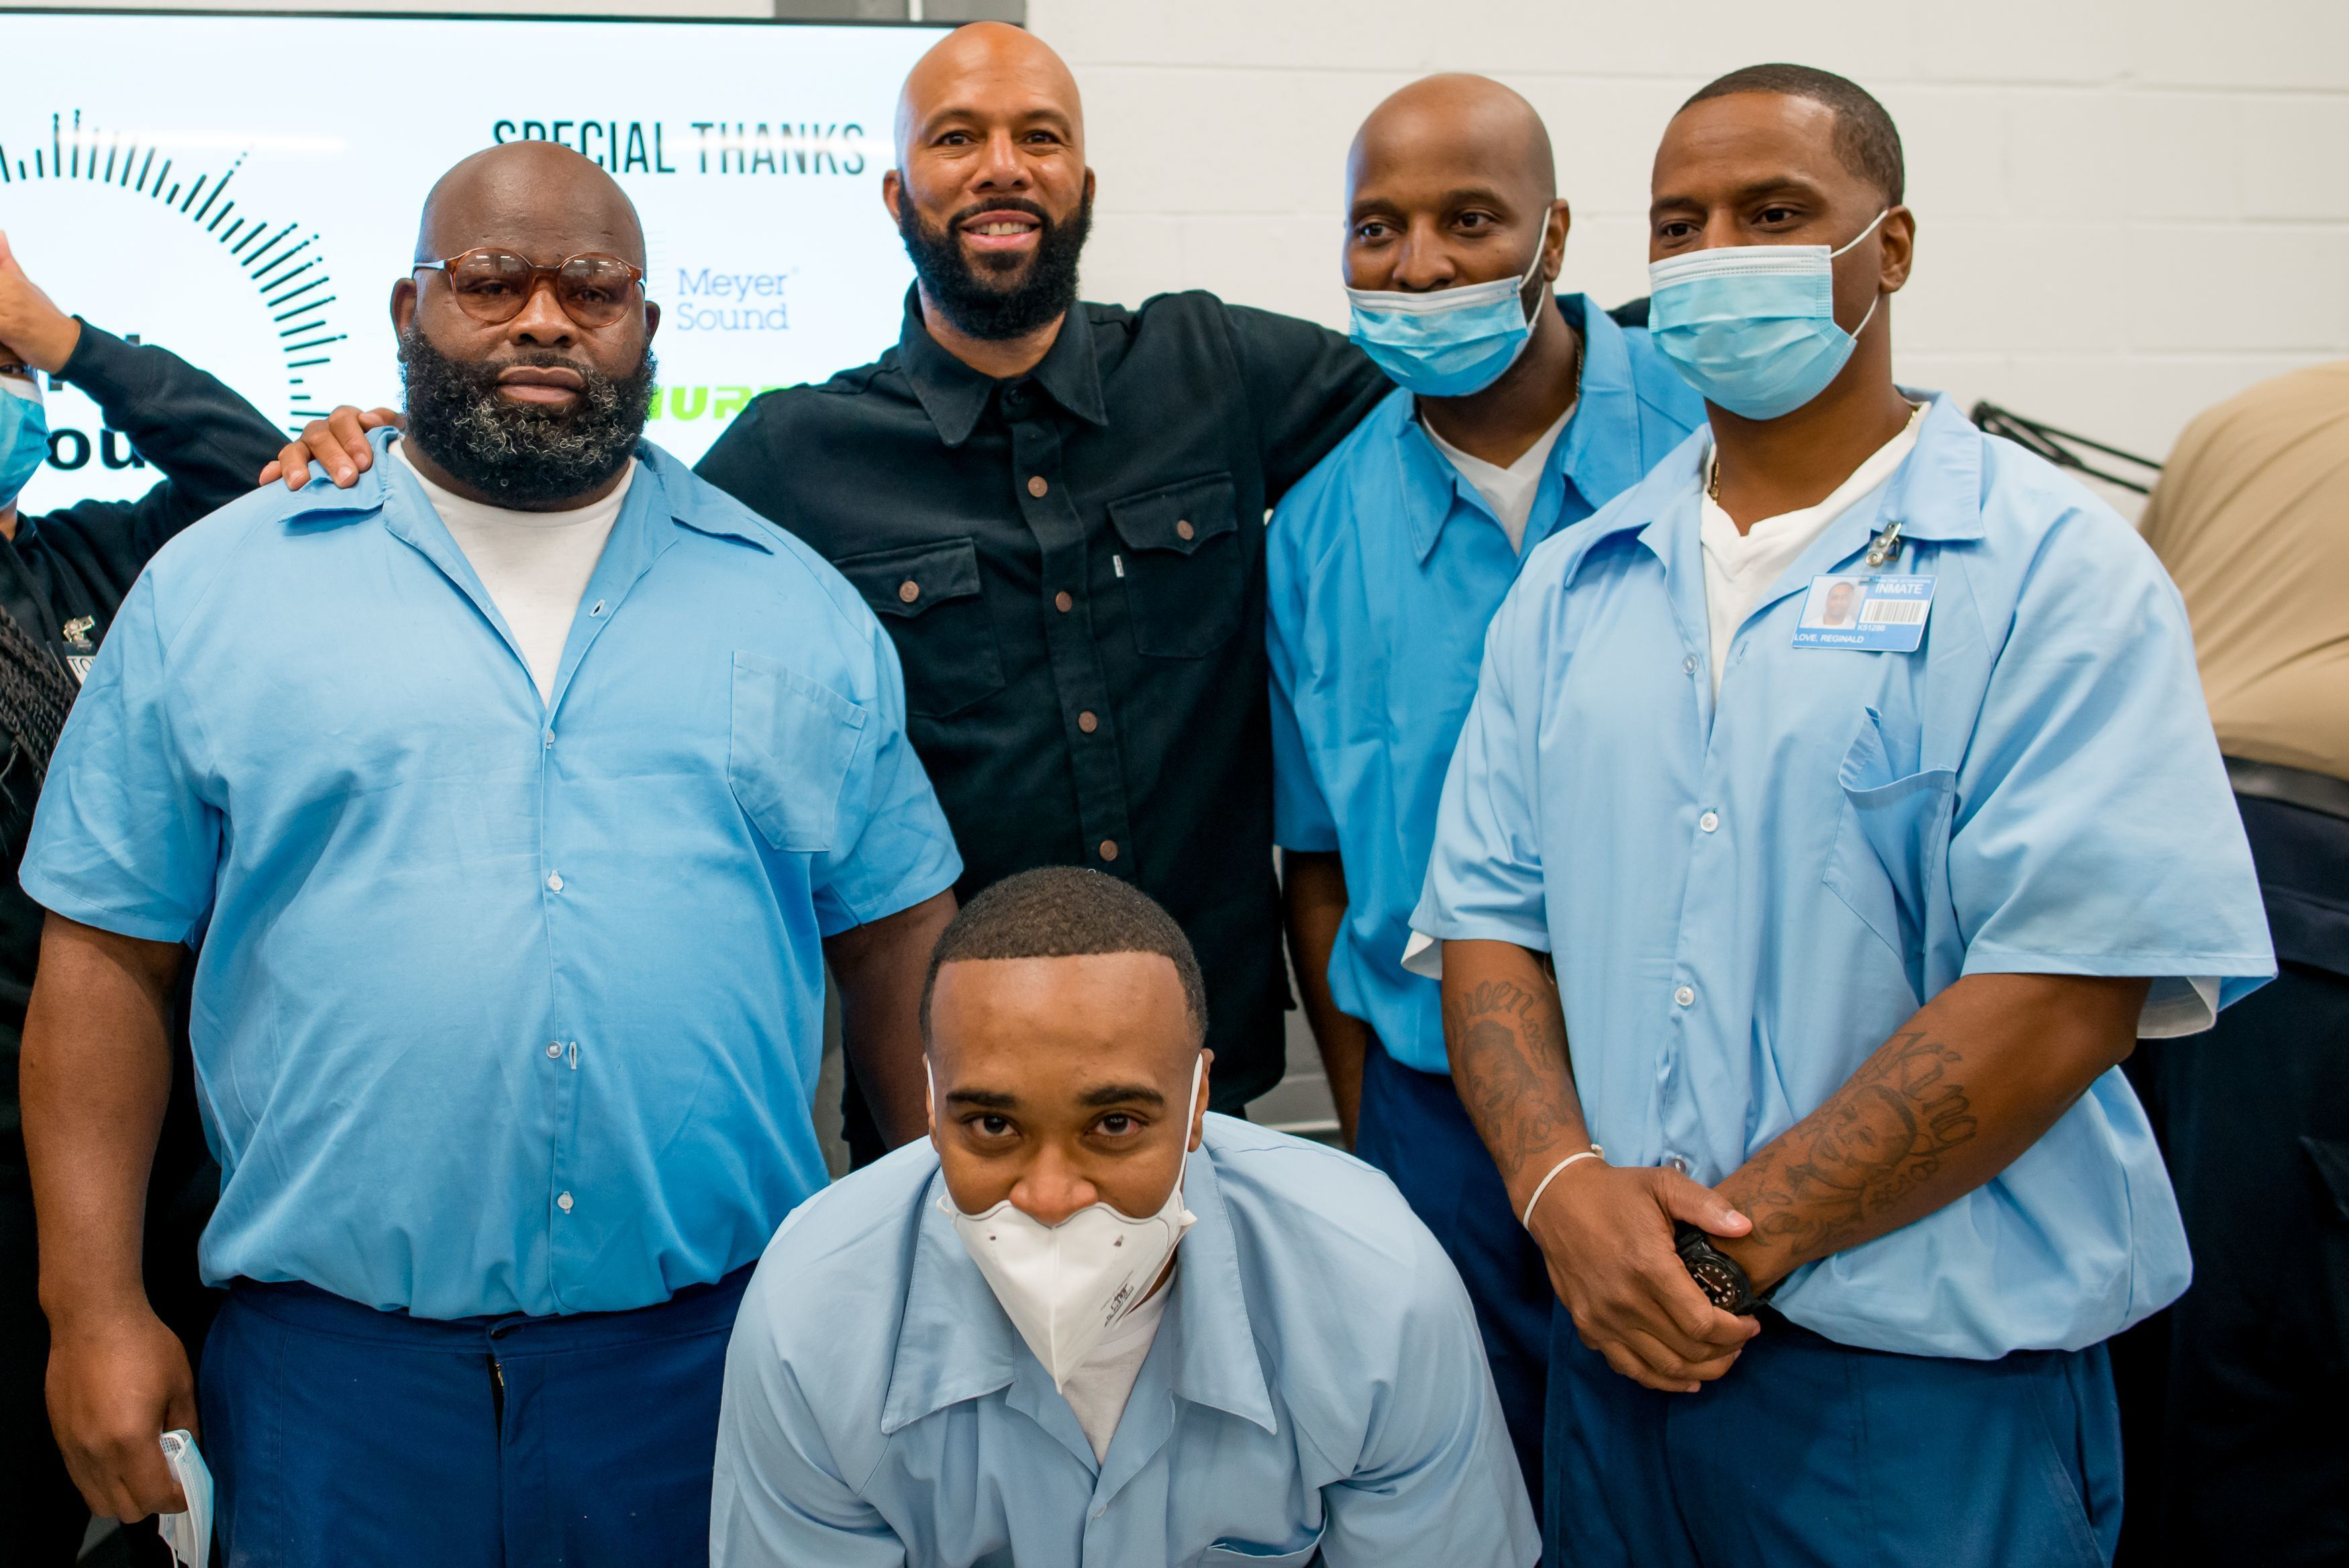 Common unveils new music program at Stateville, but participants are unsure if they'll receive time off their prison sentences